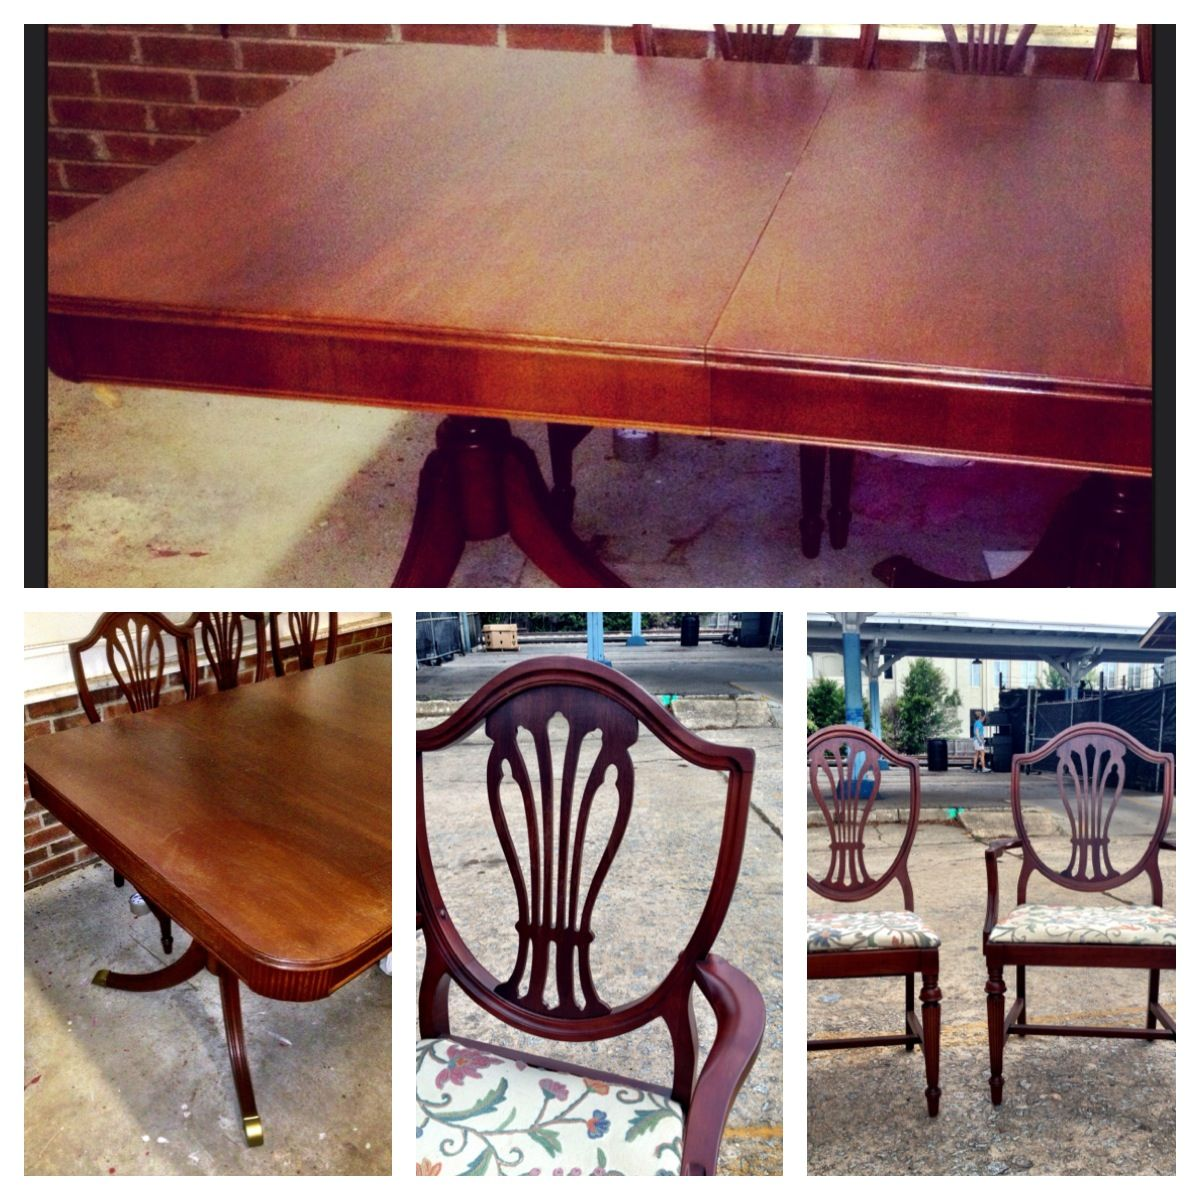 Dining Room Set For Sale By Owner: For Sale By Owner! Friend Of The Shop Is Looking To Sell